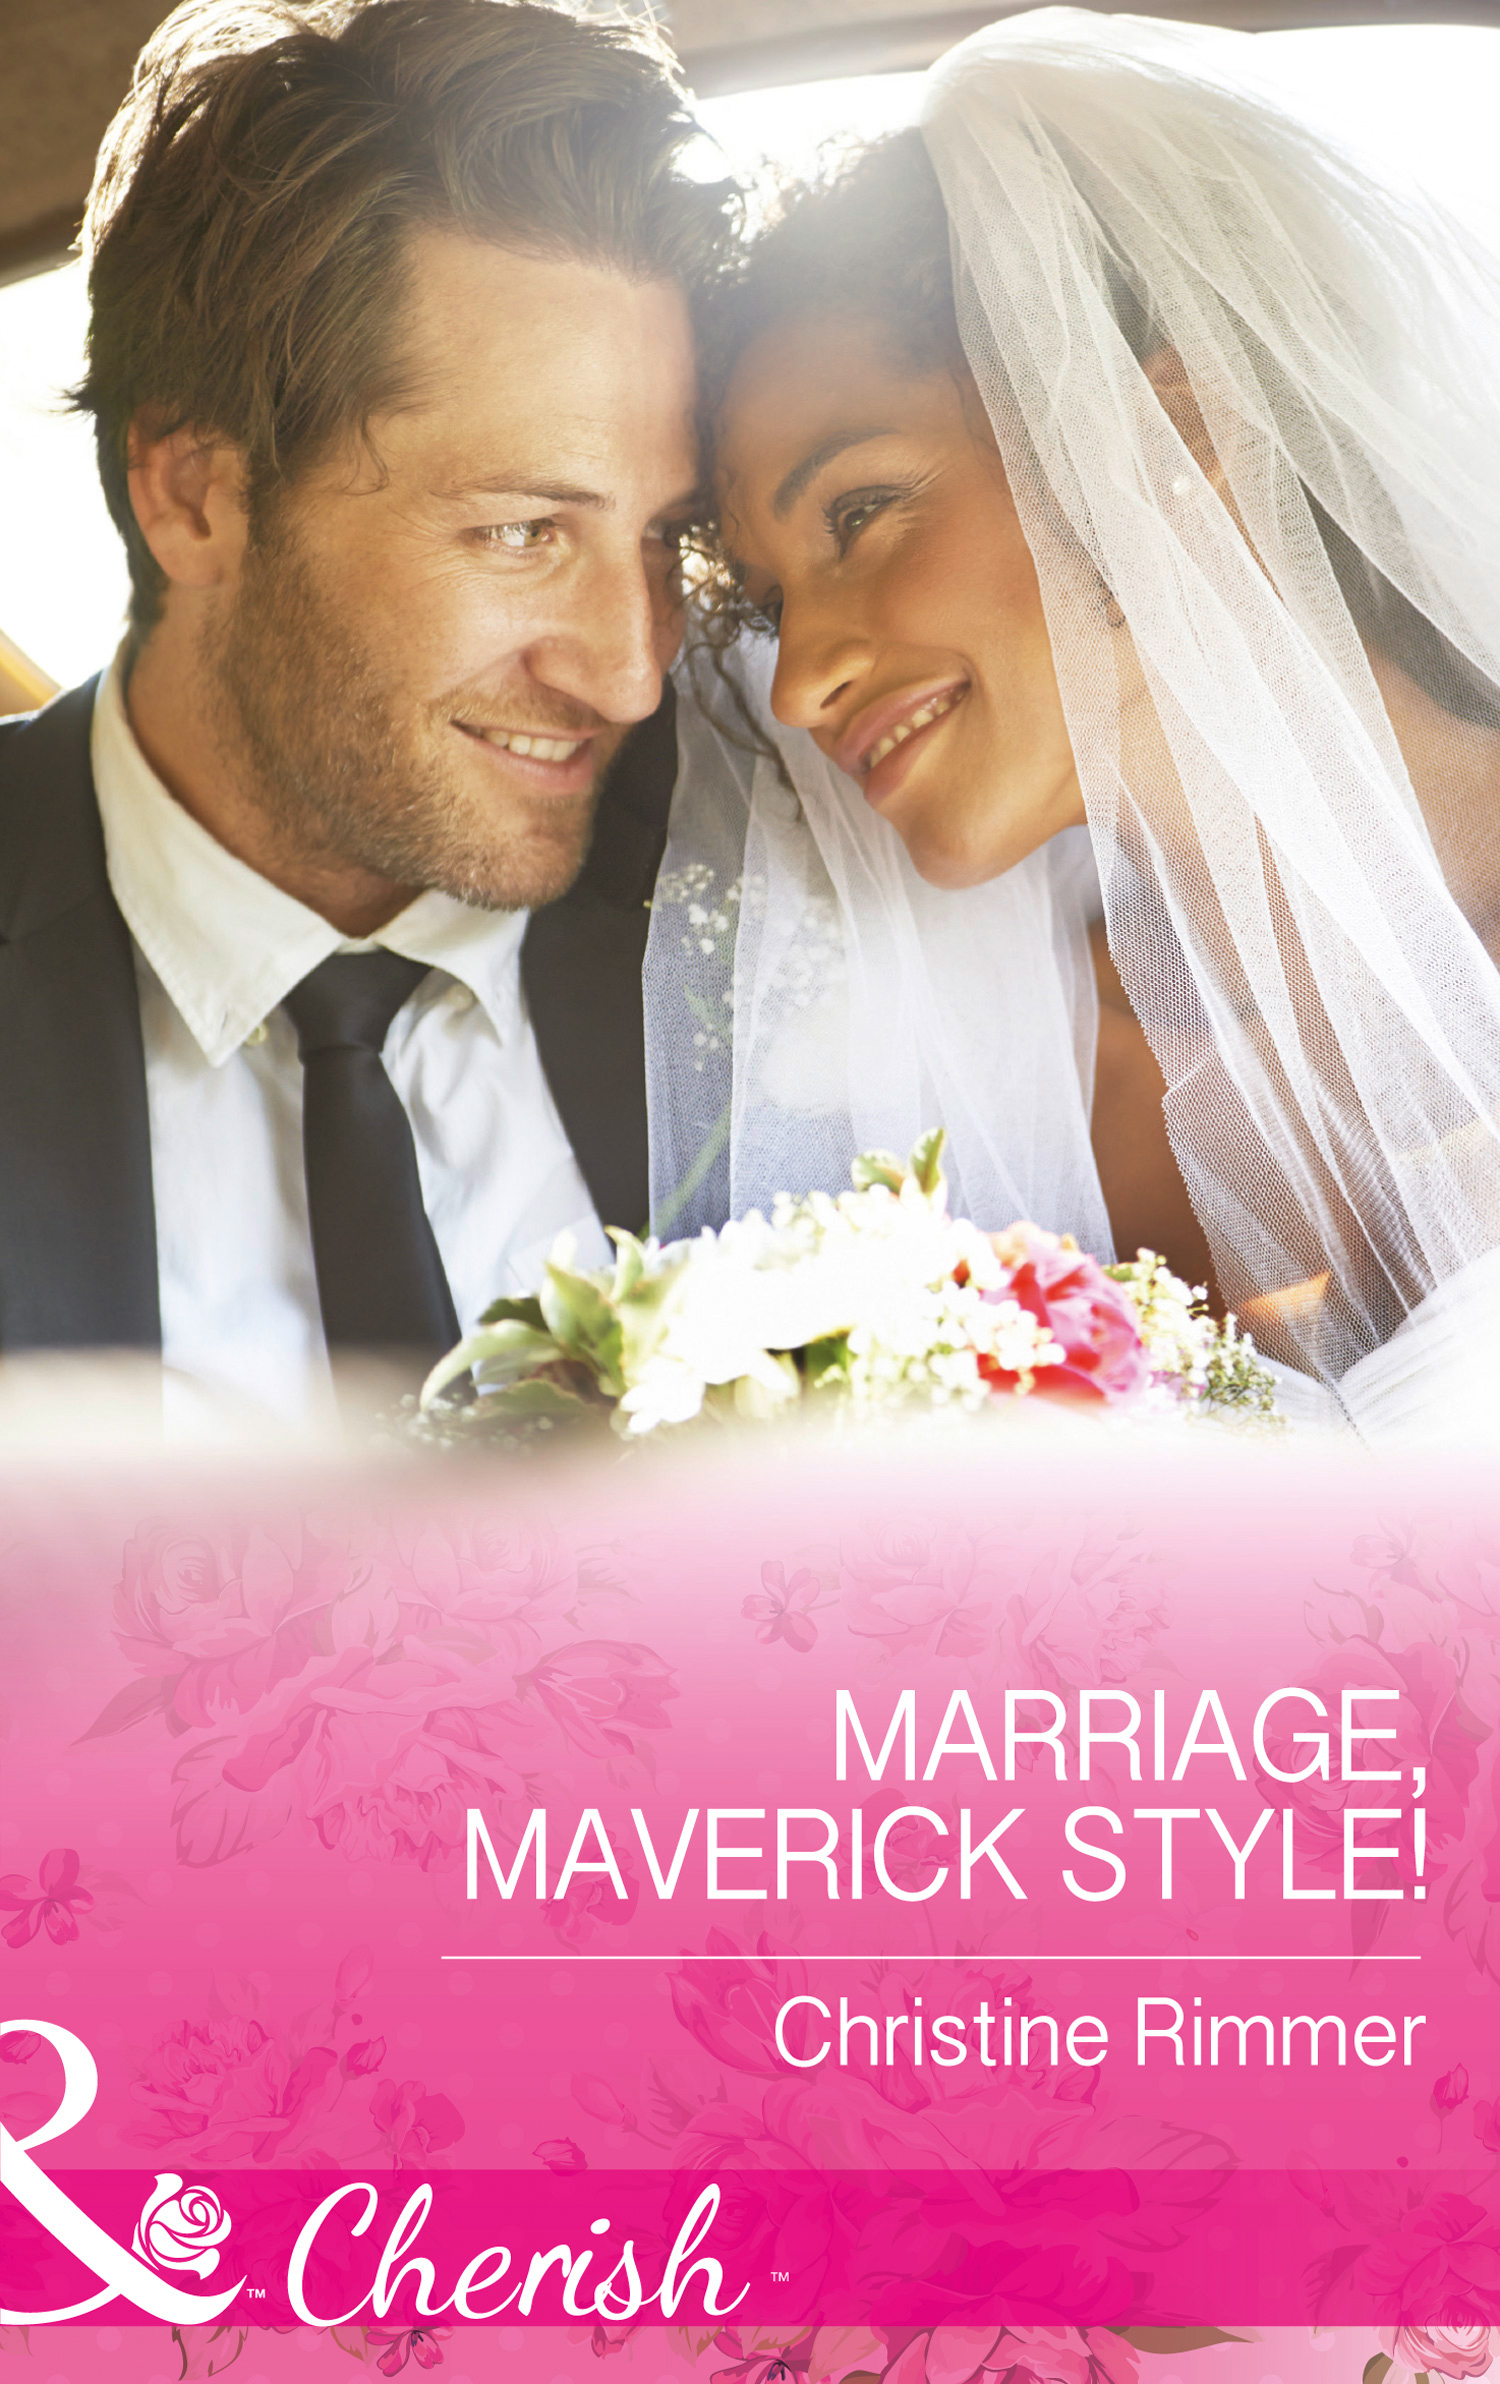 Marriage, Maverick Style!